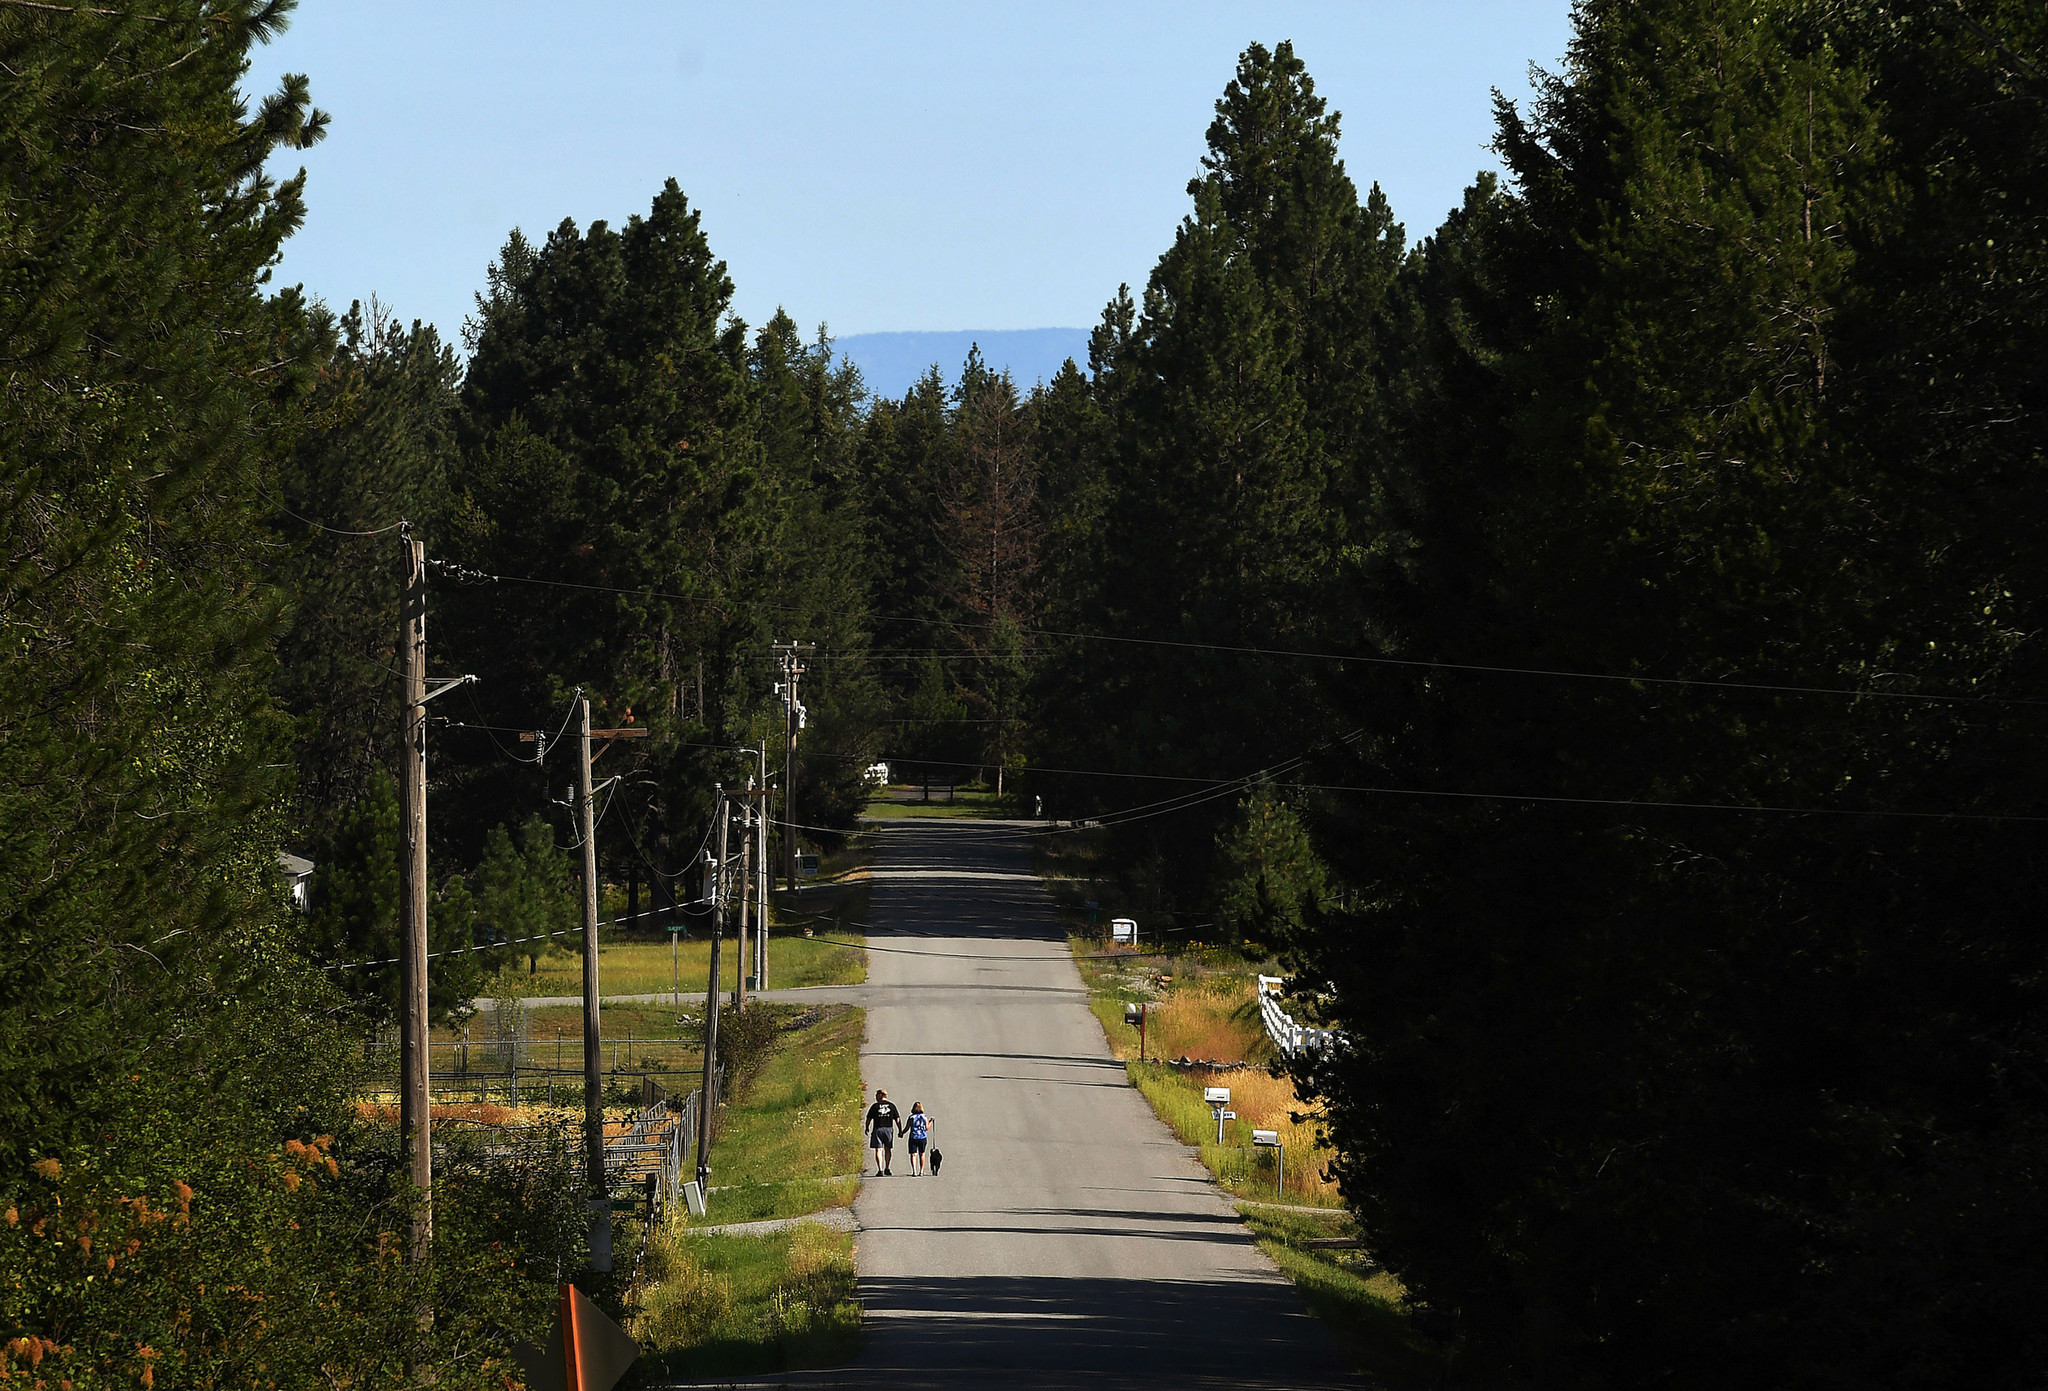 In the Pacific Northwest, members of survivalist movements are growing in number